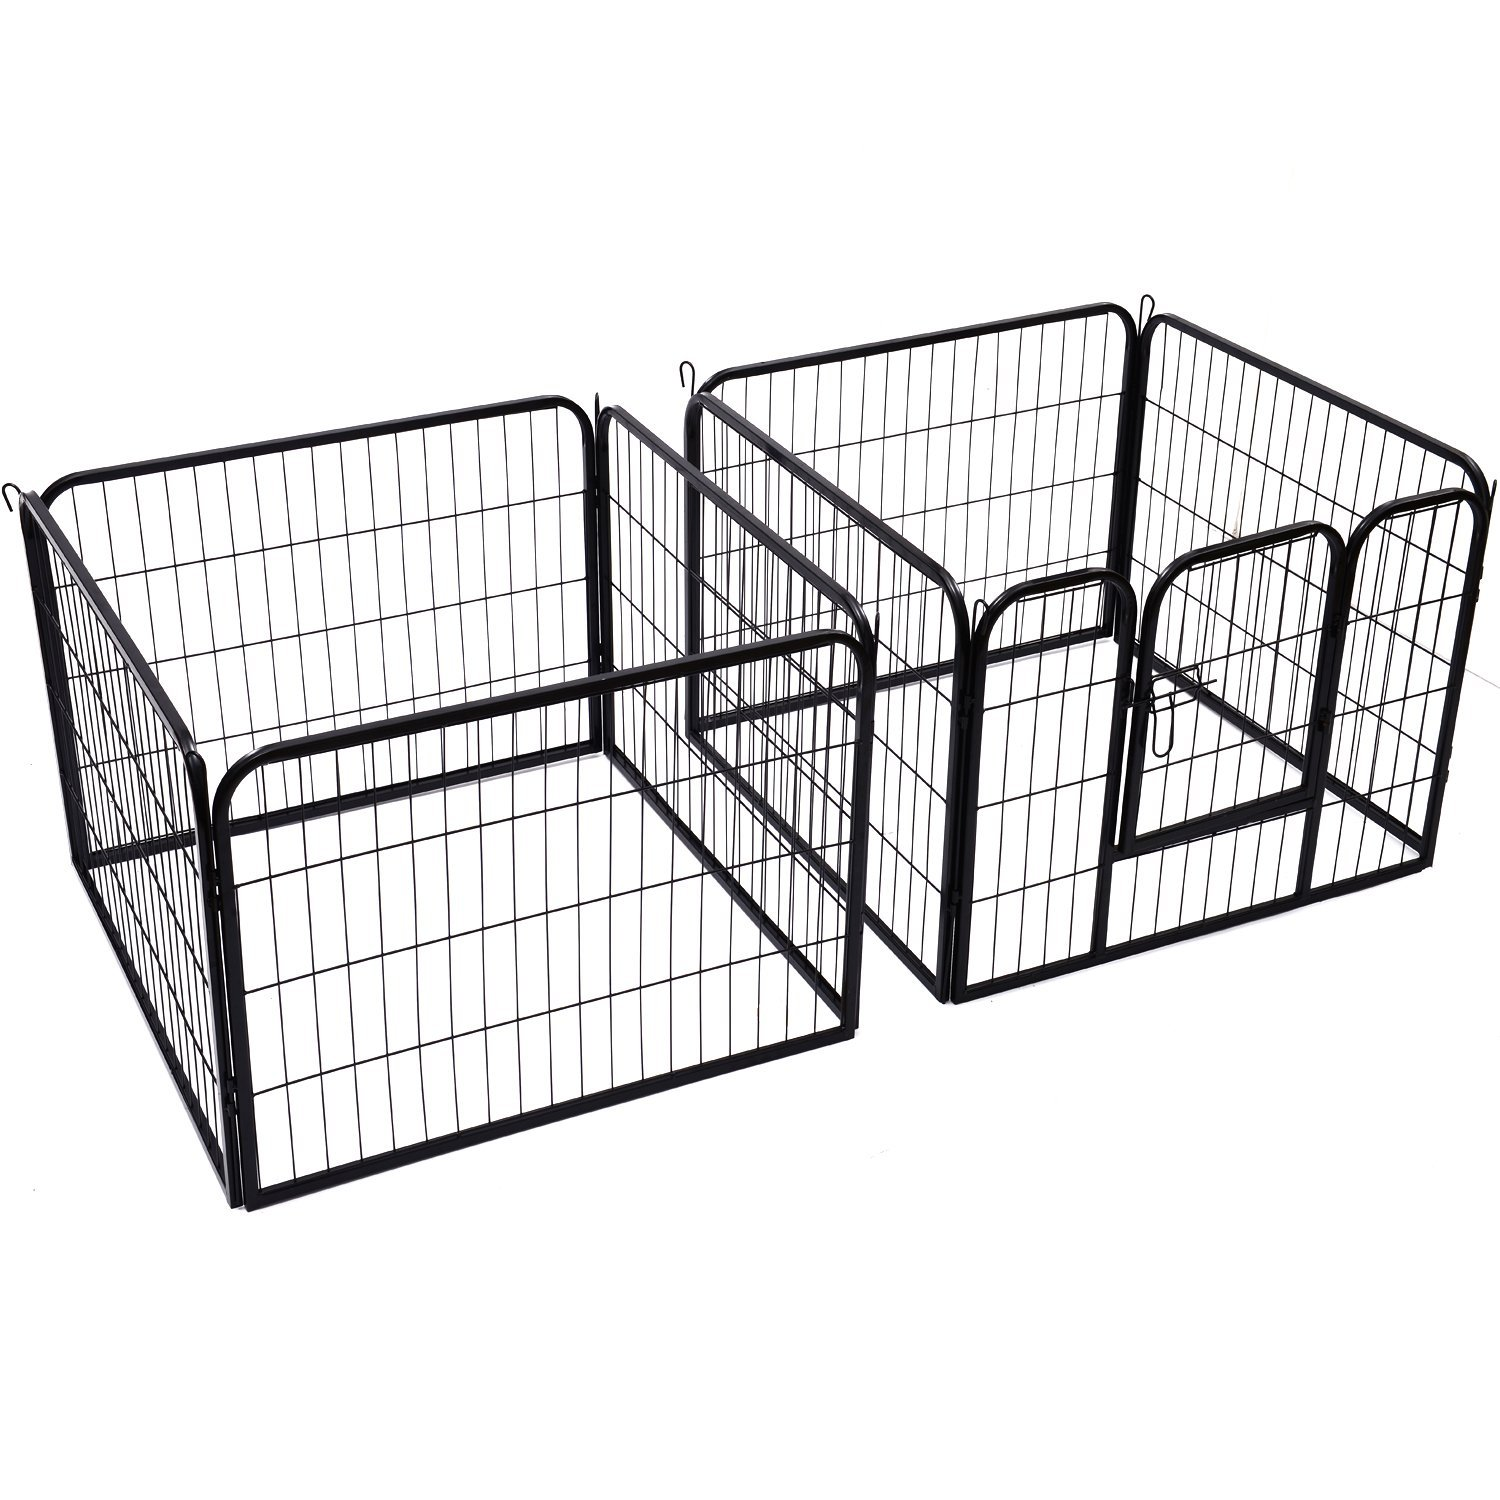 Heavy-Duty-Pet-Playpen-Dog-Exercise-Pen-Cat-Fence-Black-8-Panel-24-034-32-034-39-4-034 thumbnail 10